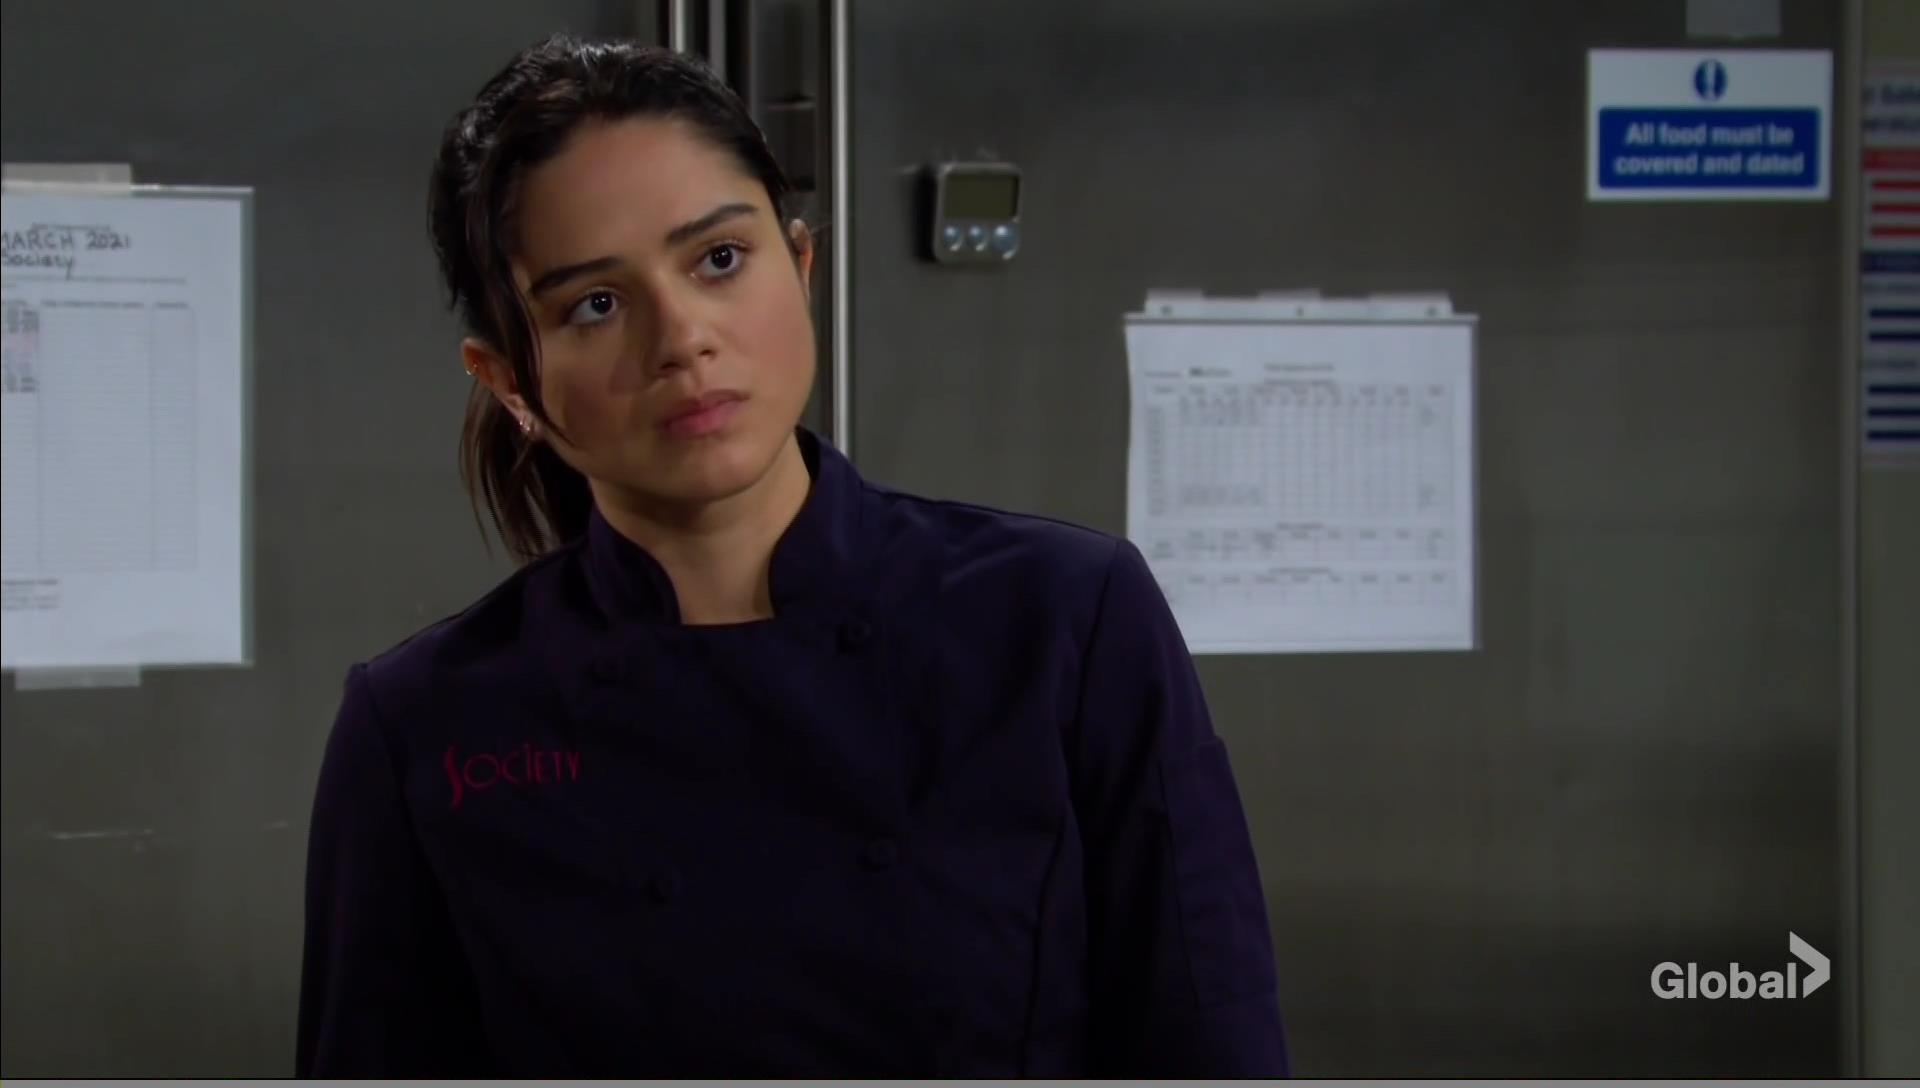 lola chats up rey young restless